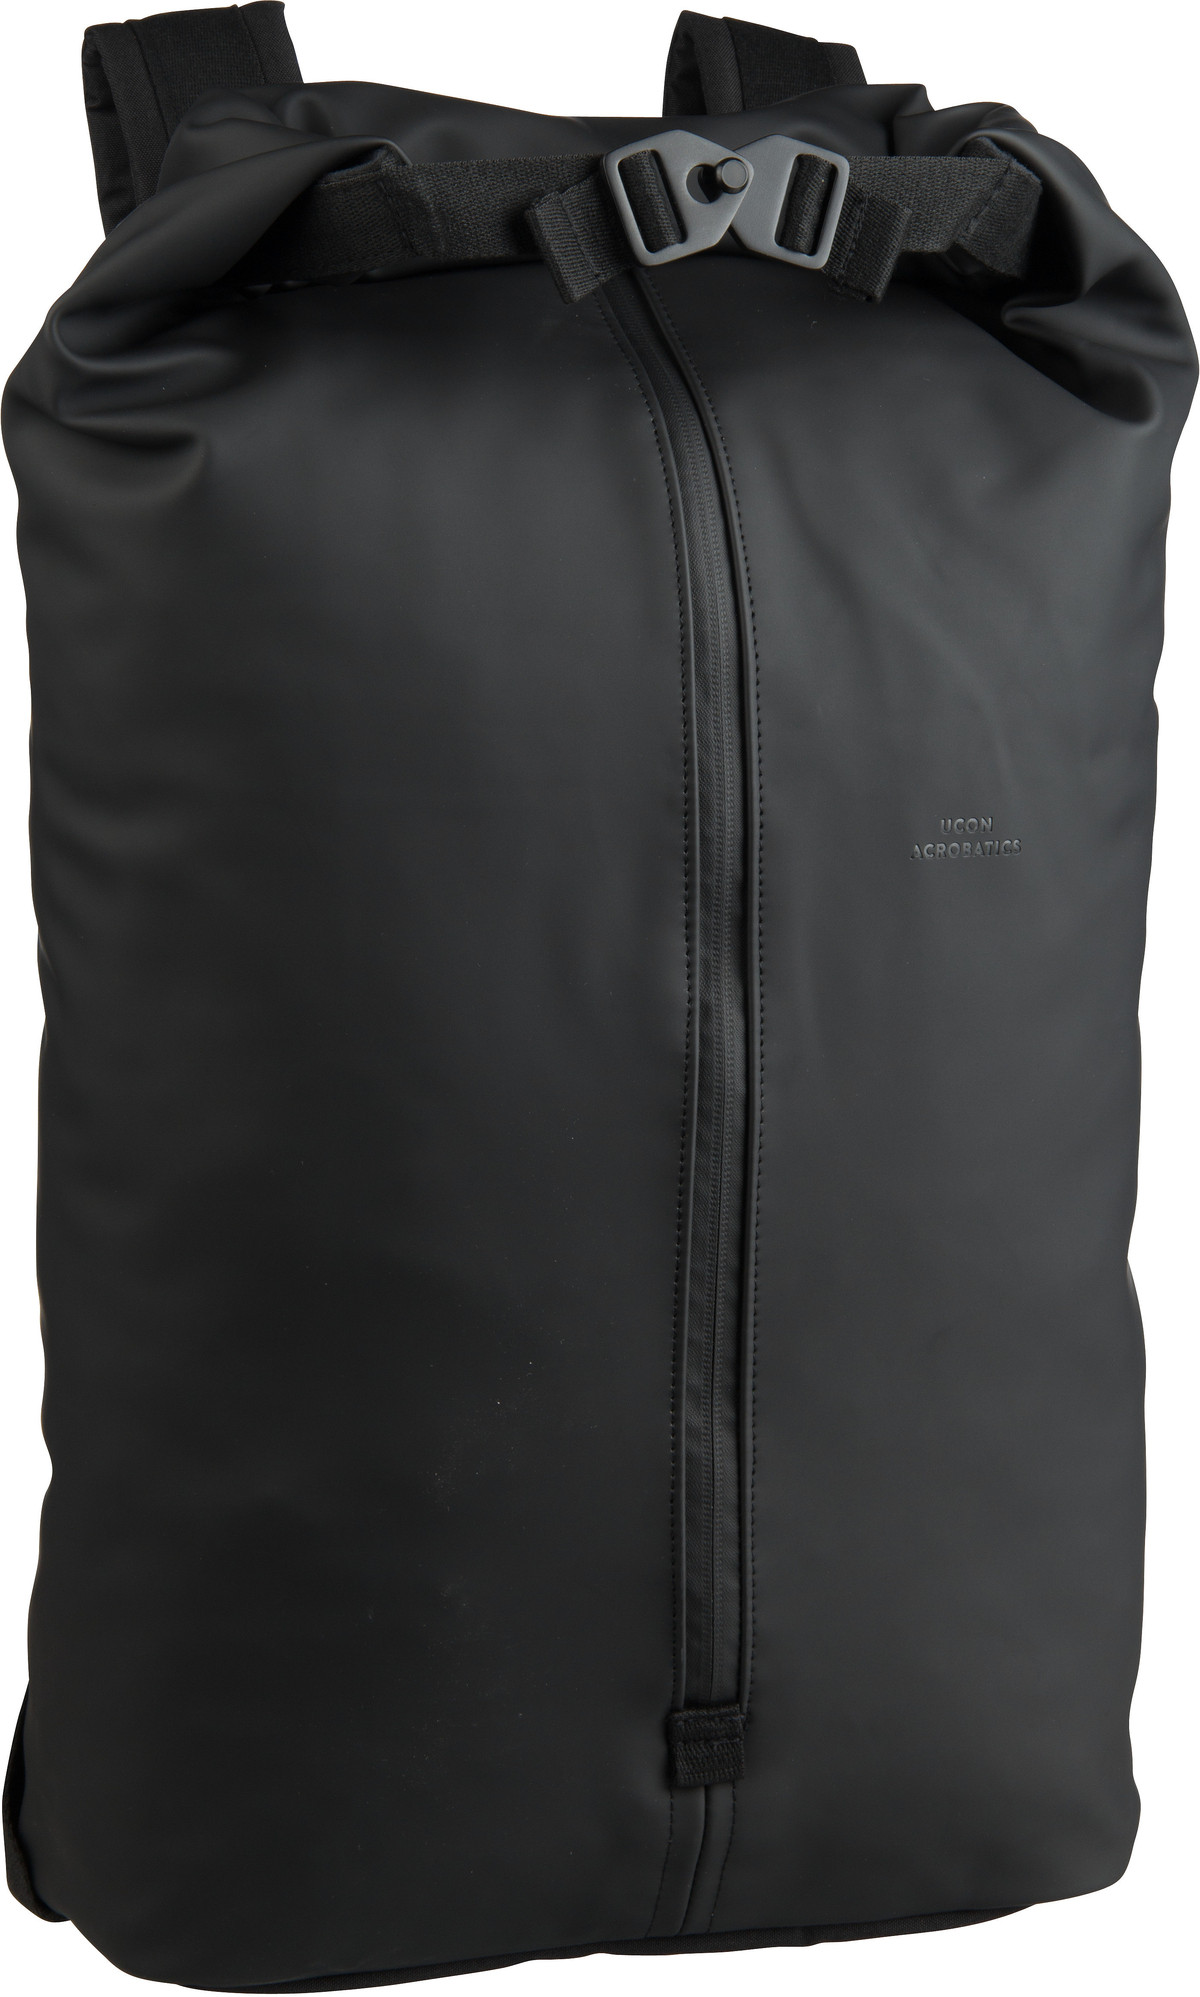 Rucksack / Daypack Lotus Frederik Backpack Black (20 Liter)